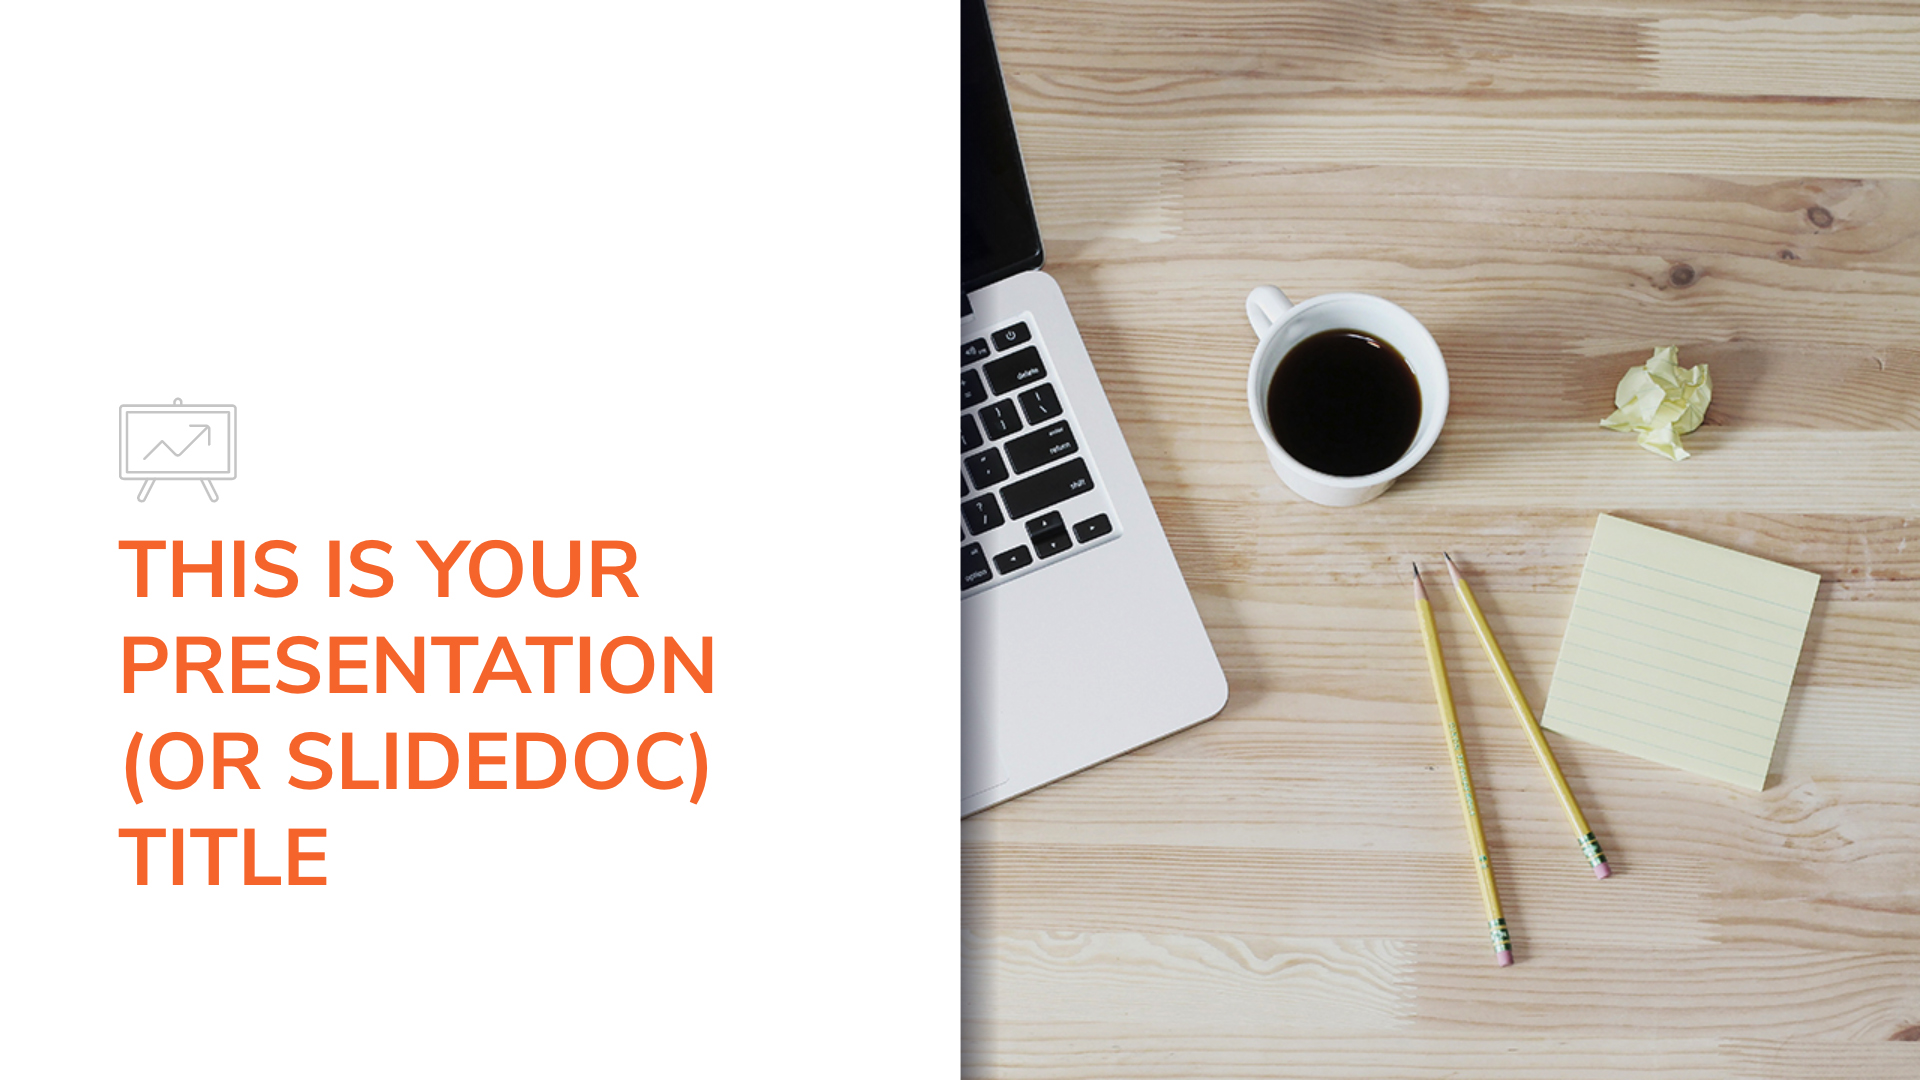 Free professional and clean Powerpoint template or Google Slides theme for slidedocs